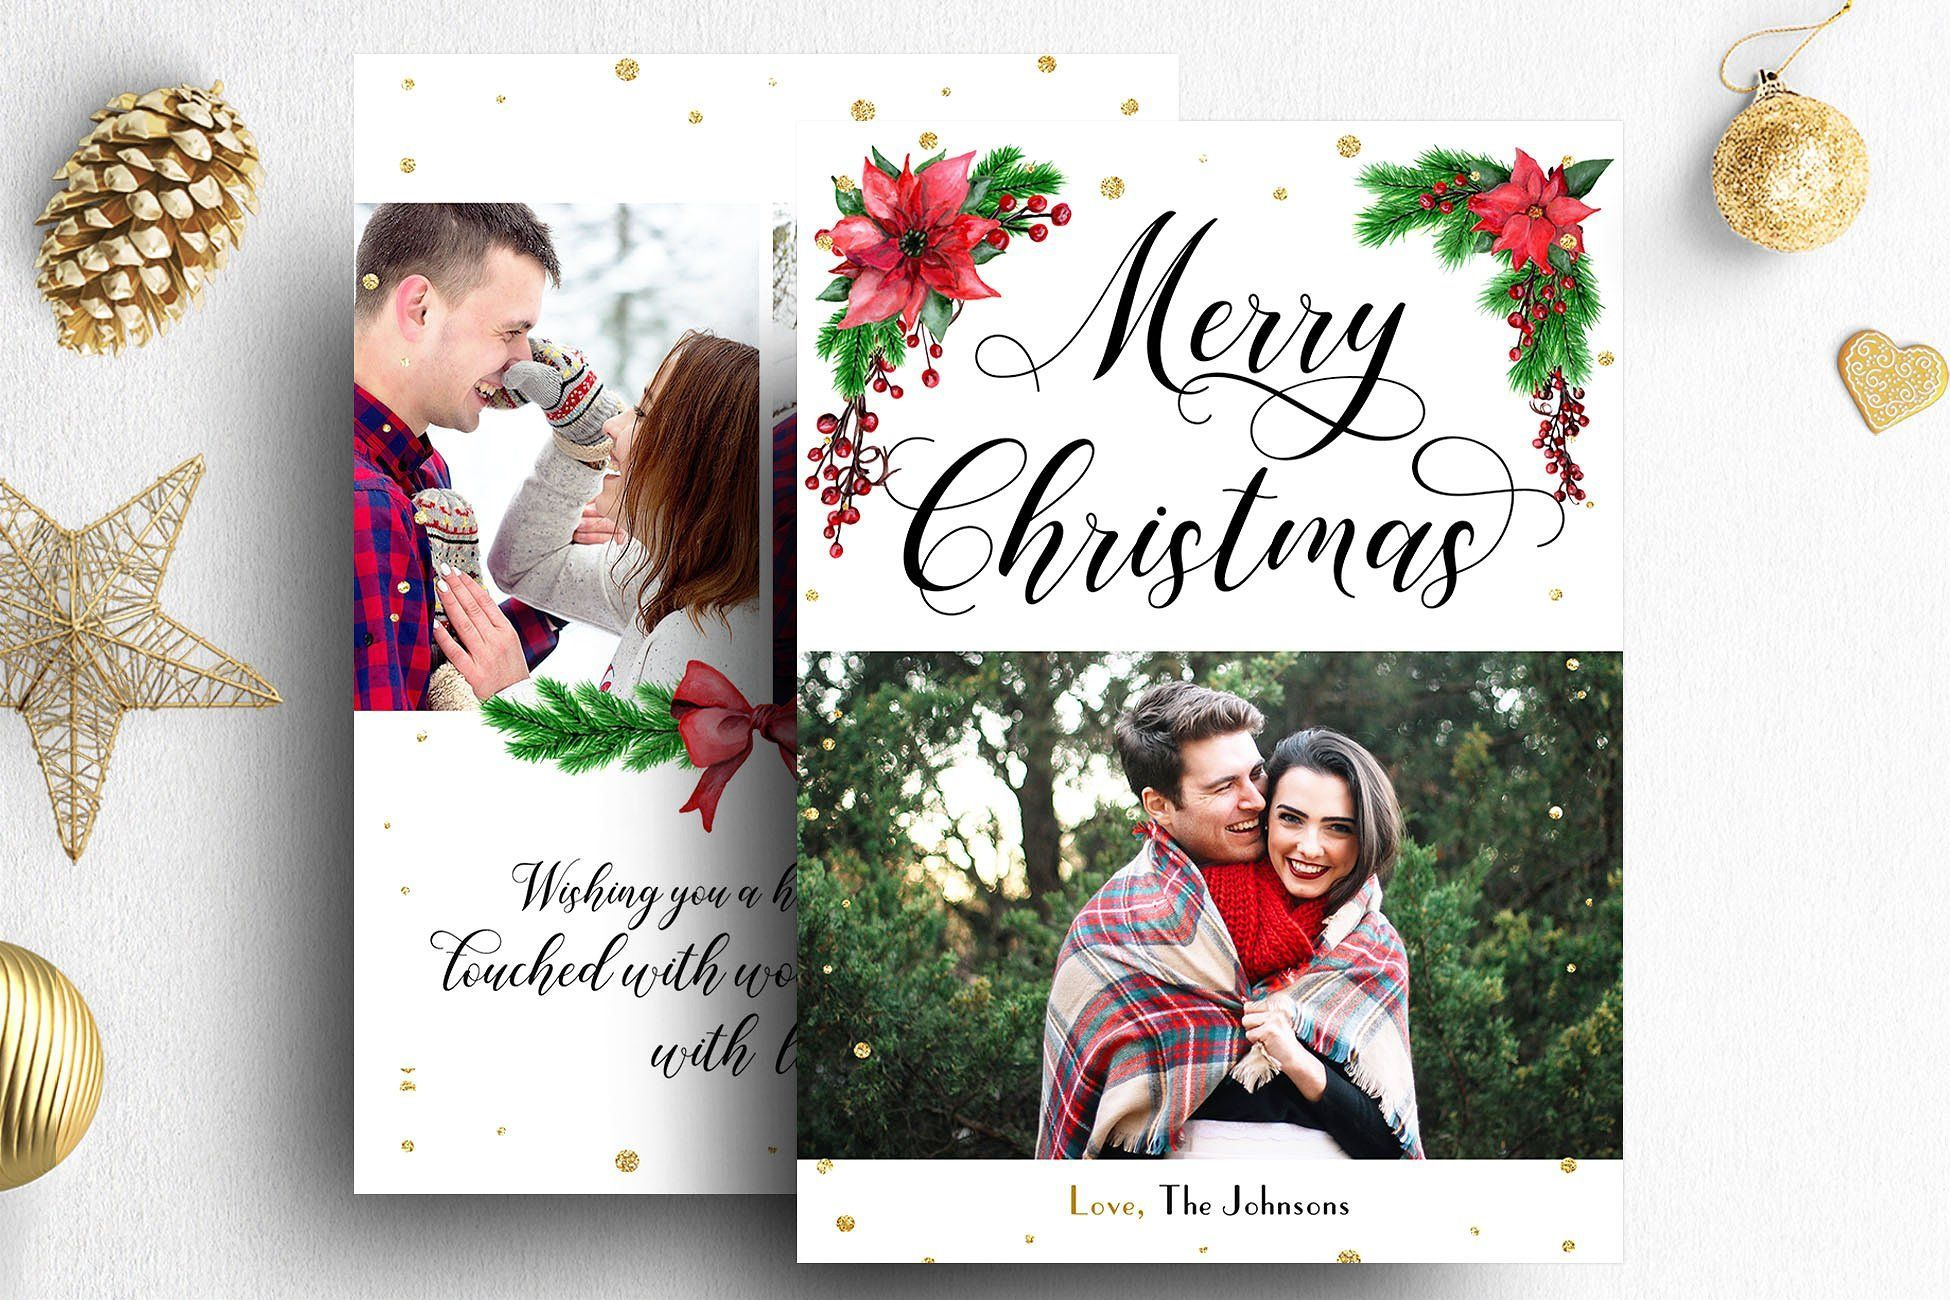 004 Amazing Photoshop Christma Card Template High Definition  Templates Xma FunnyFull